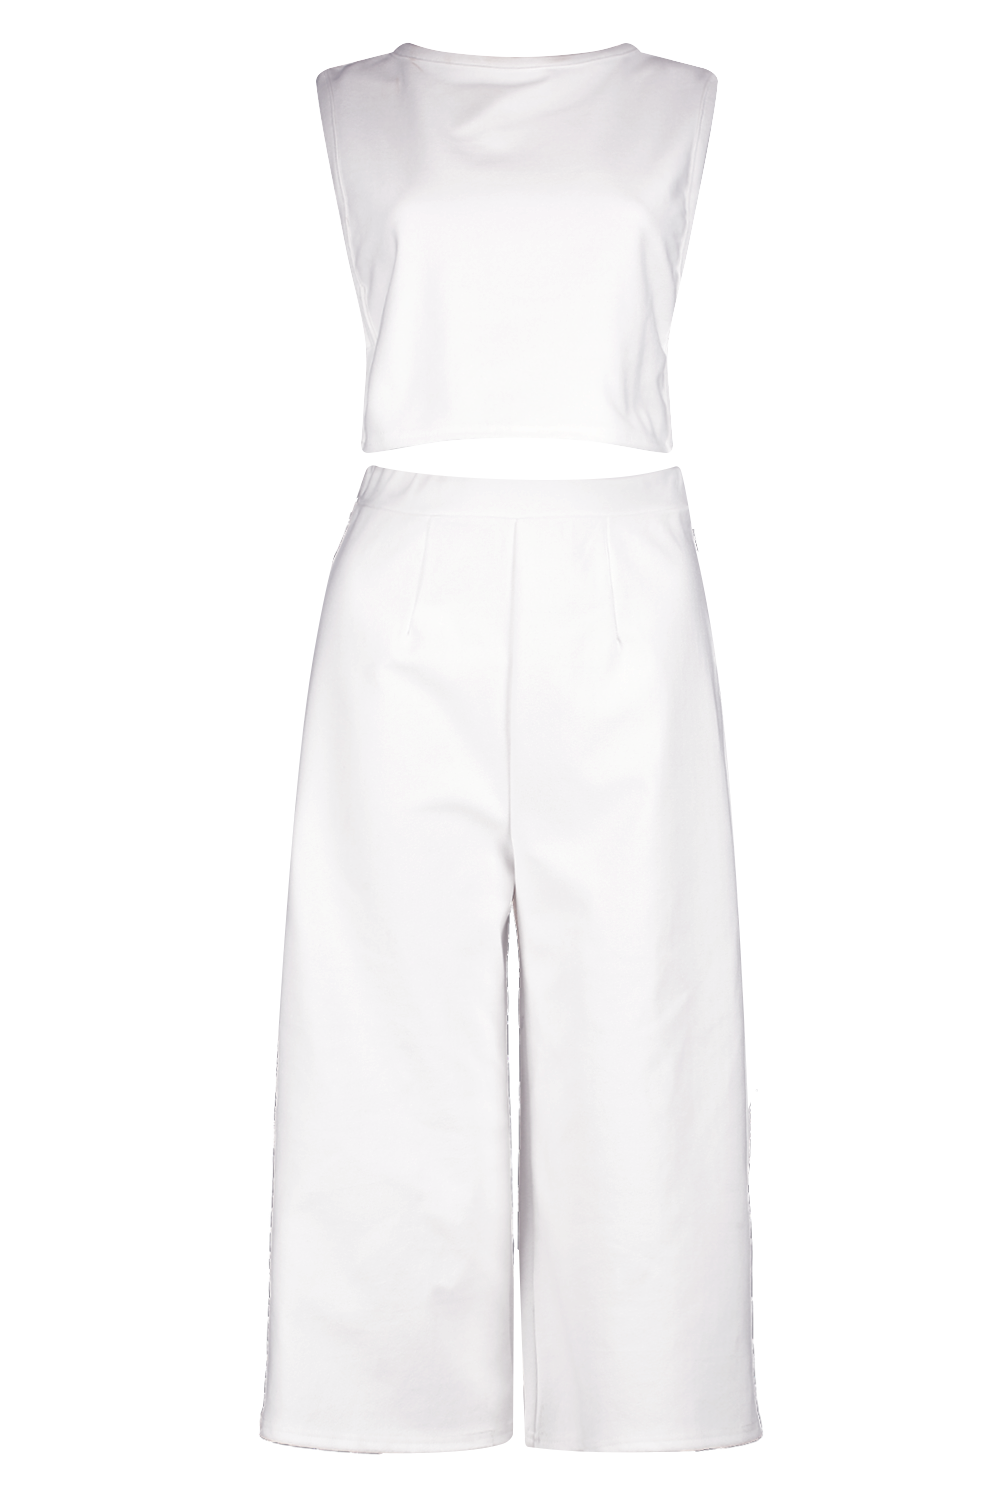 Culottes For Beginners: The Pairs You'll Wanna Wear